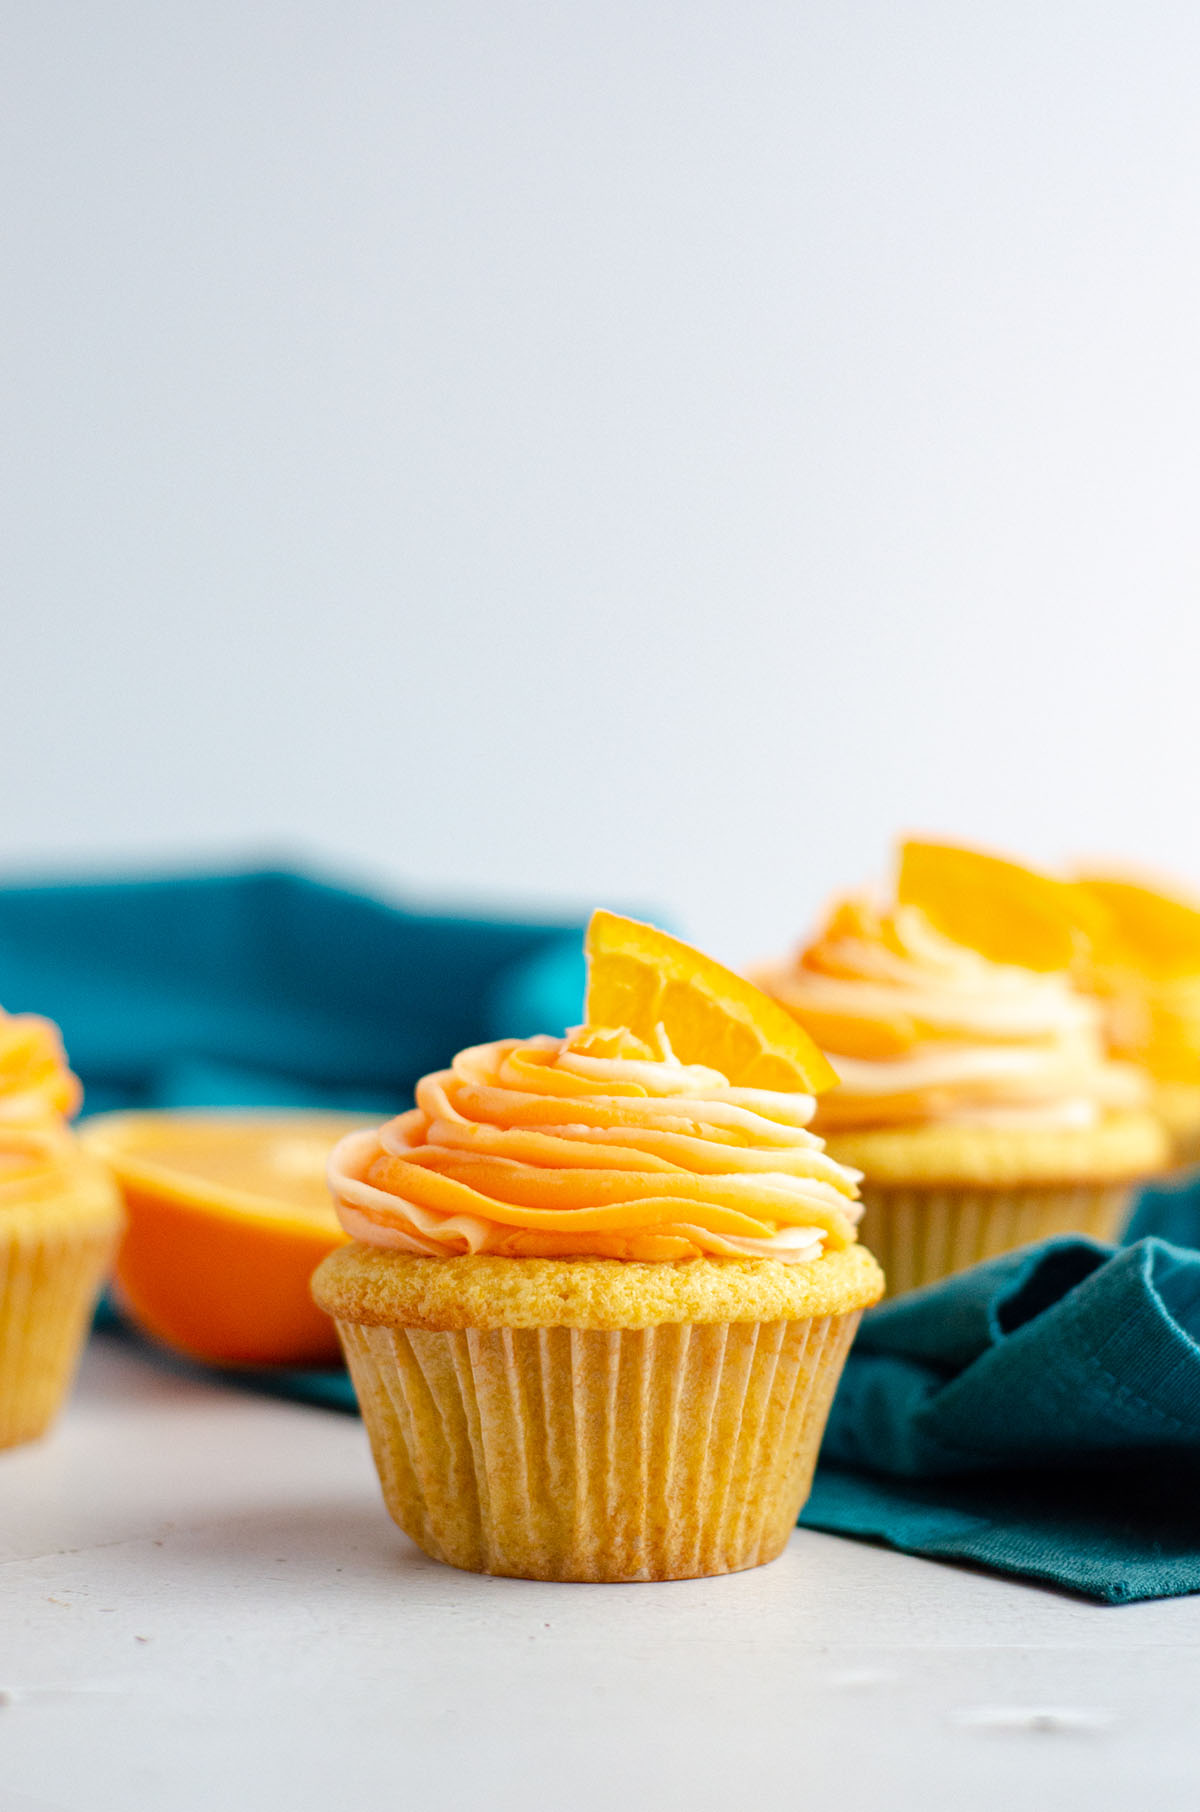 orange creamsicle cupcake in front of a turquoise kitchen towel and orange slices